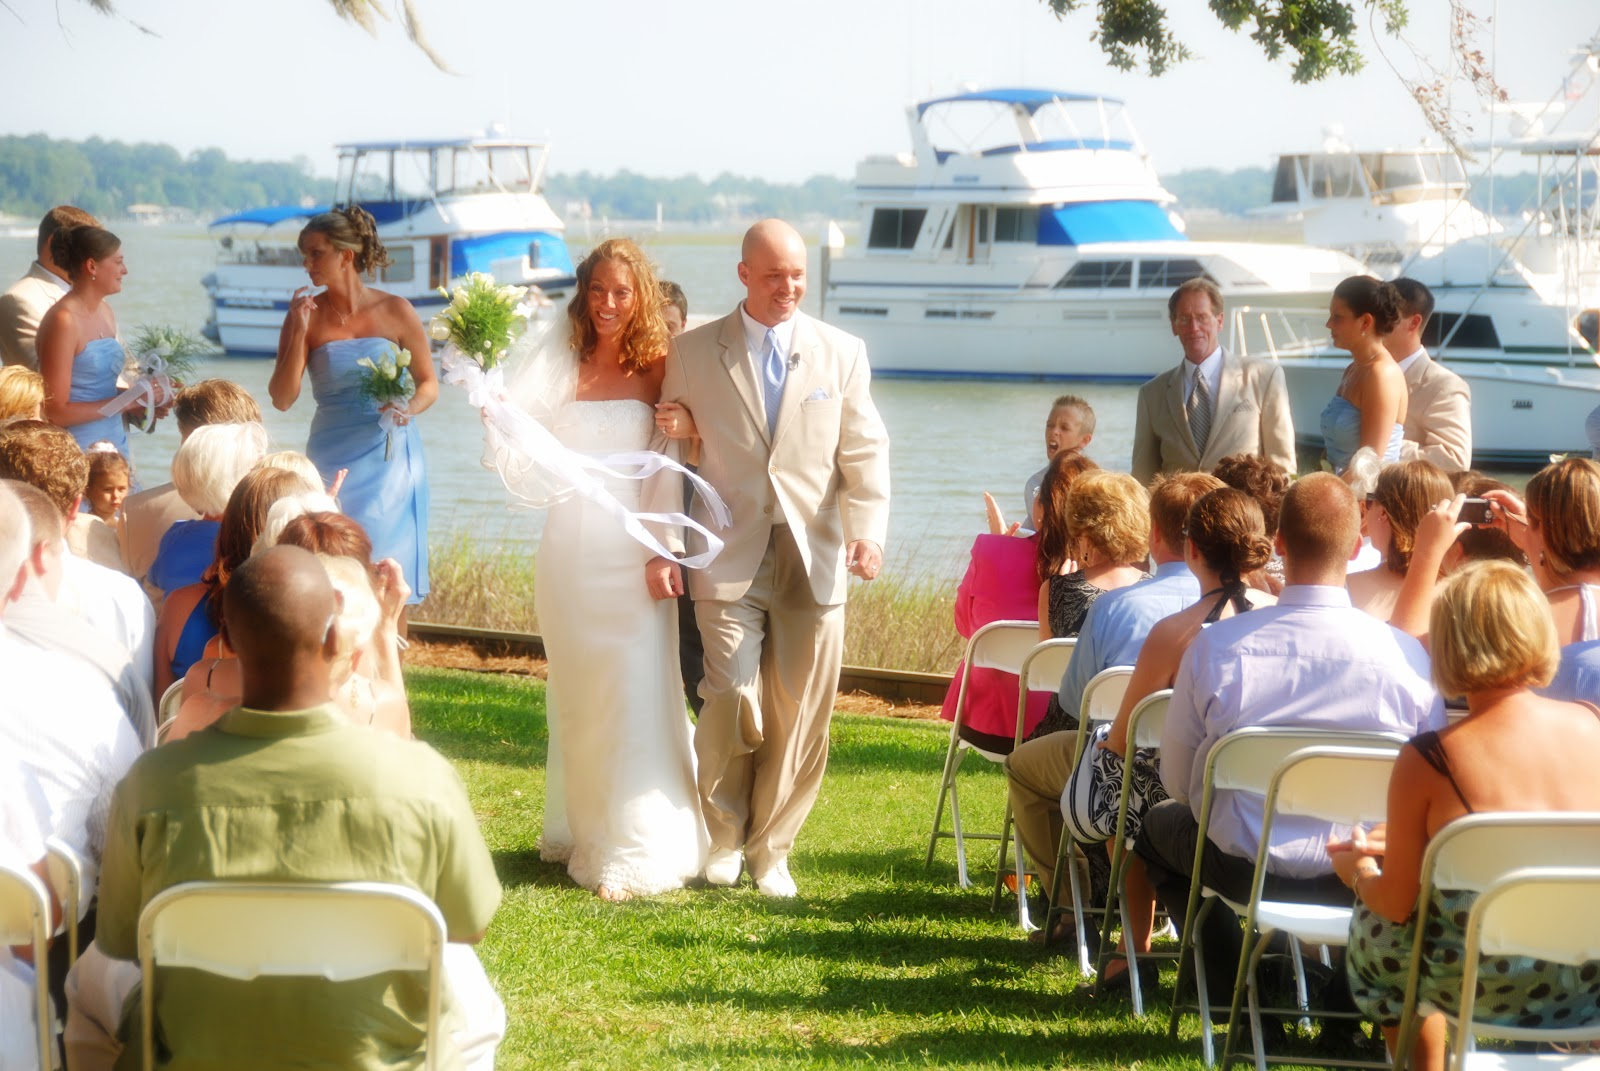 Here Is A Wedding We Did At The Savannah Yacht Club Weather Was Perfect In June And Bride Glowing Groom Could Not Take His Eyes Off Her